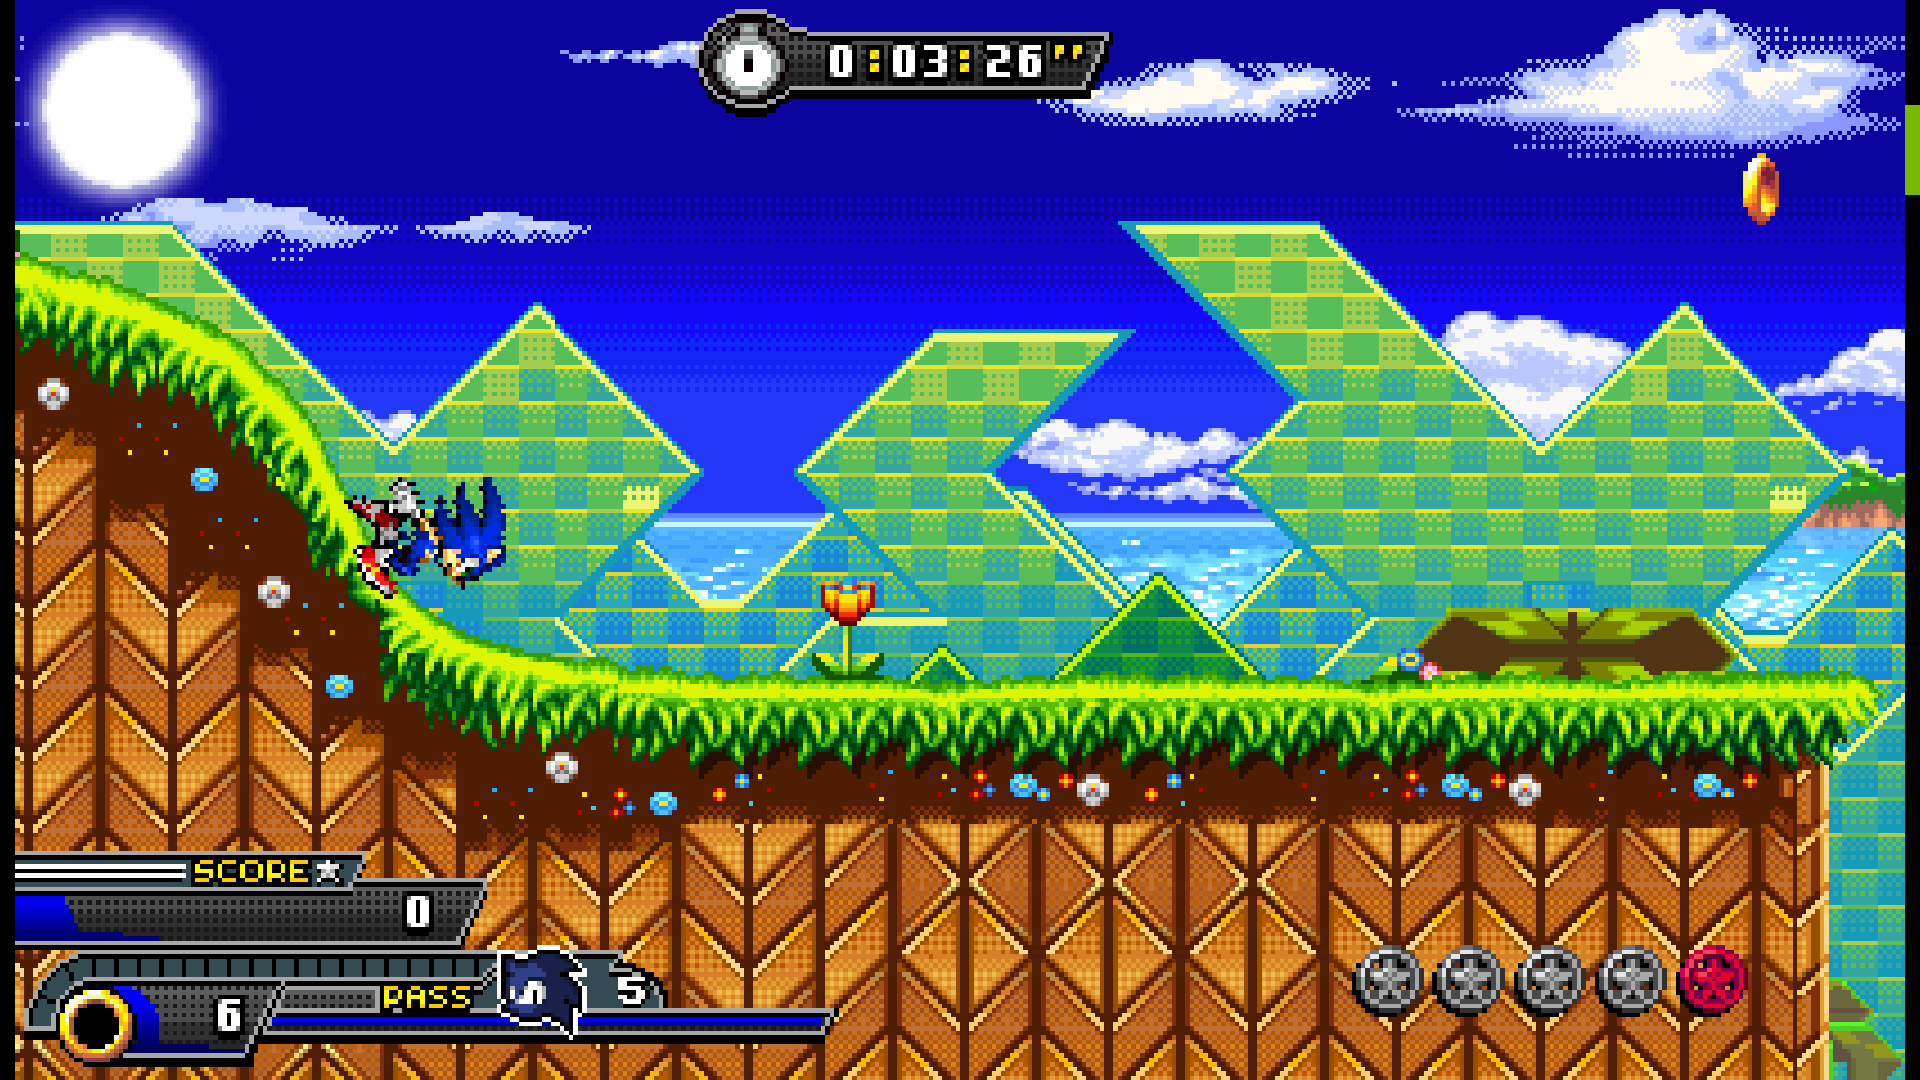 Sonic Advance 4 Advanced 8_20_2020 11_46_36 PM.png